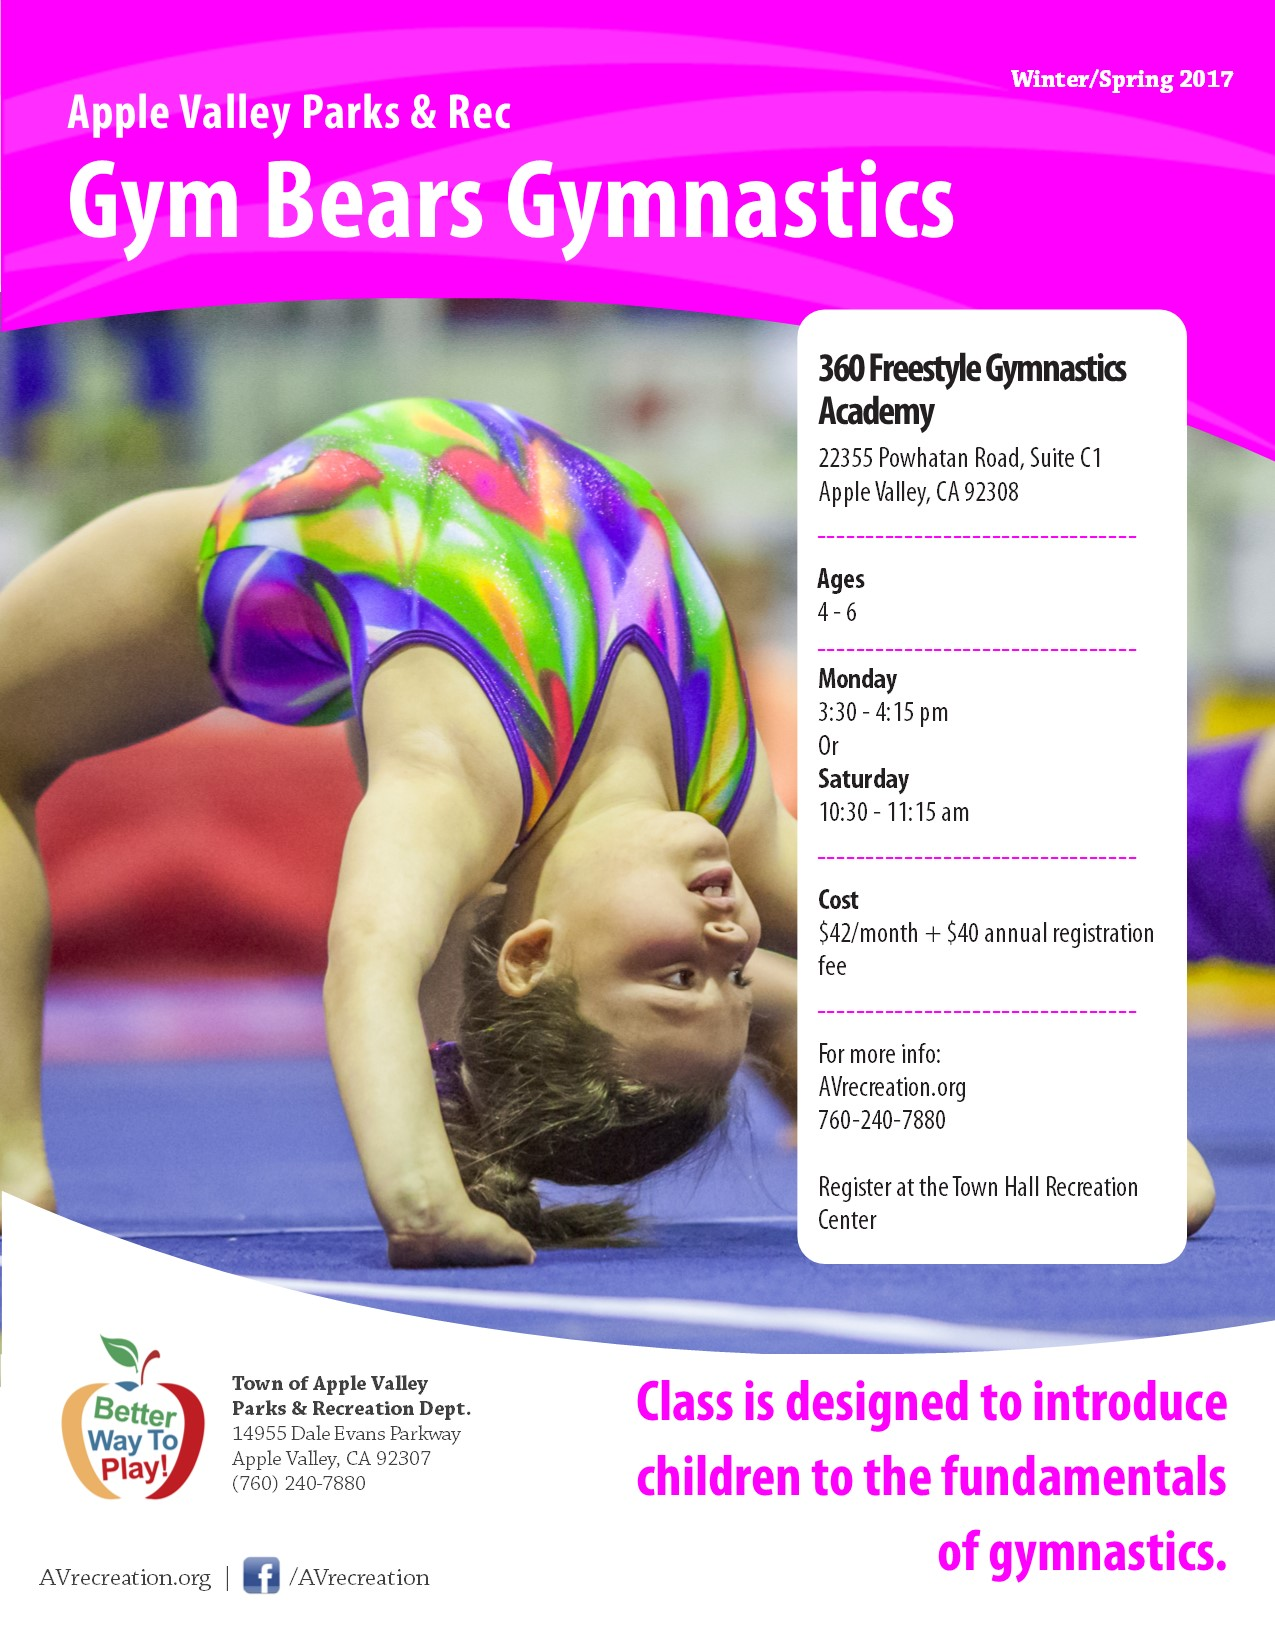 Gym Bears Gymnastics